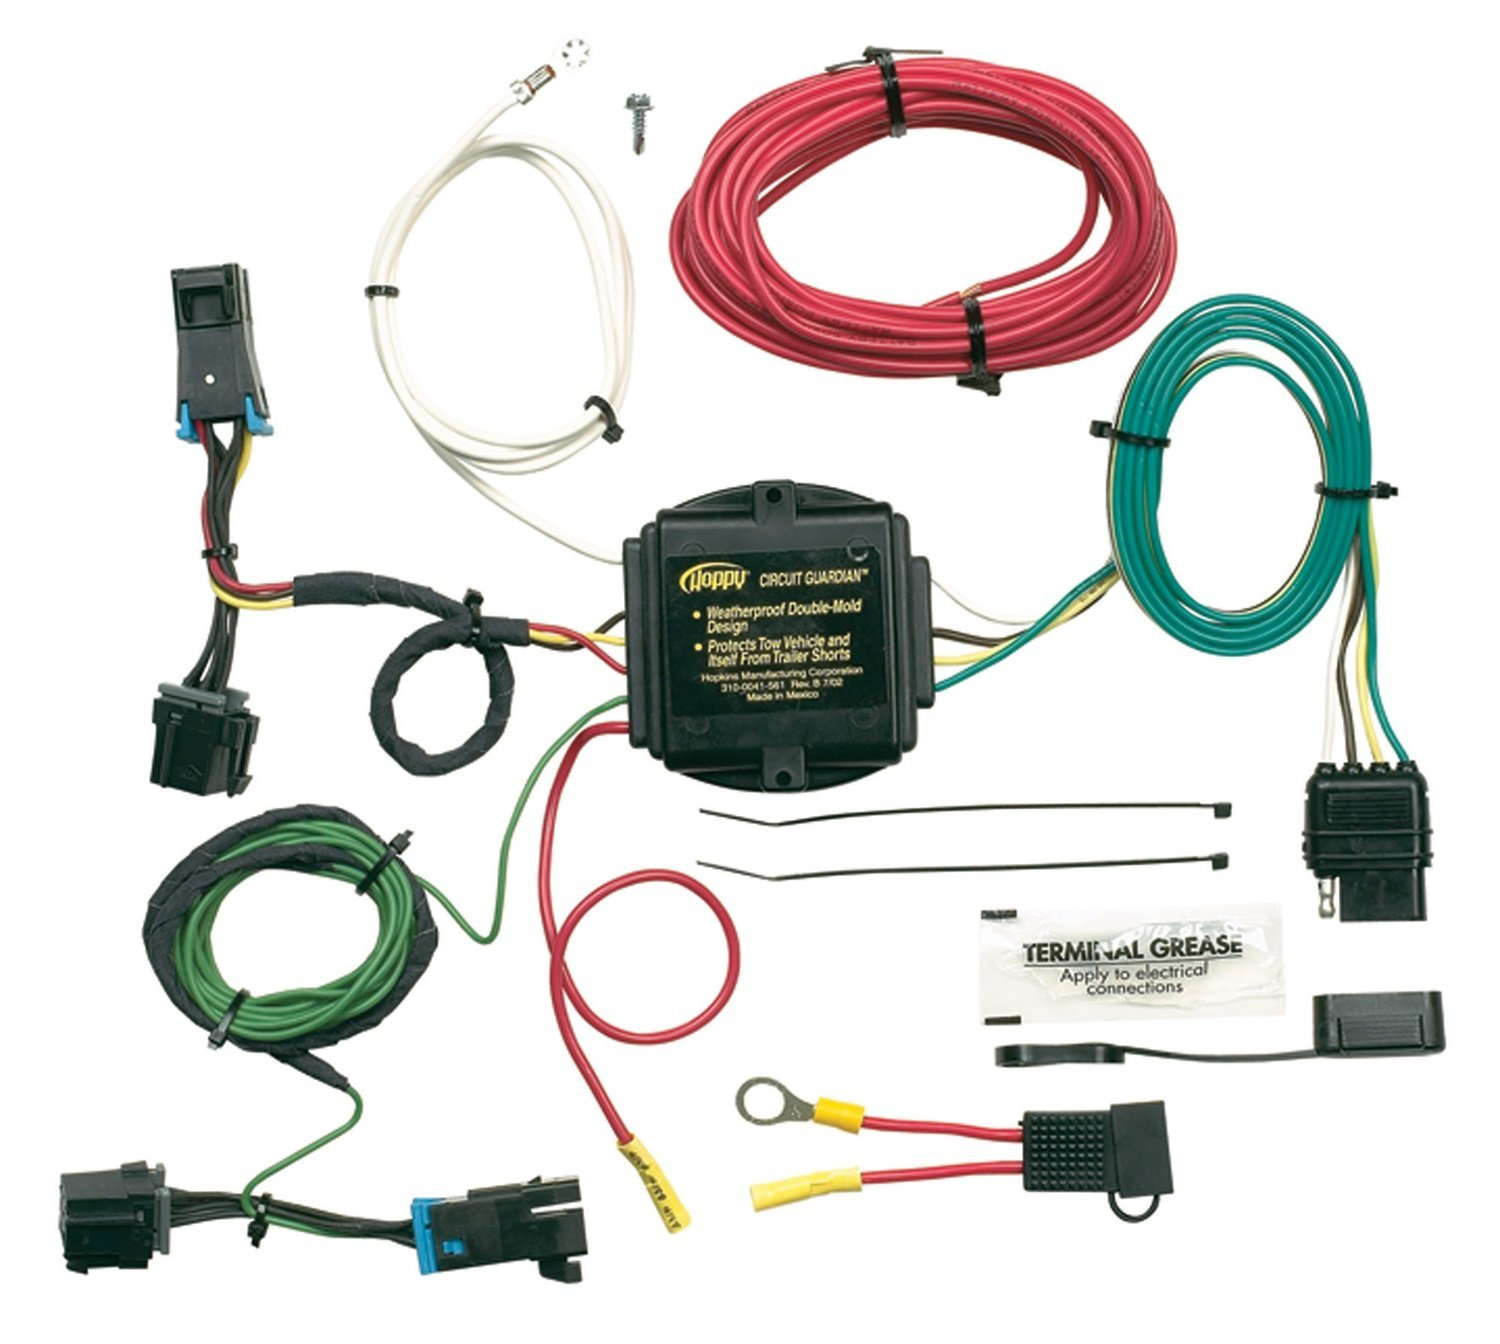 medium resolution of hopkins towing solutions automotive tools equipment walmart com hopkins towingr 40185 towing wiring harnesses